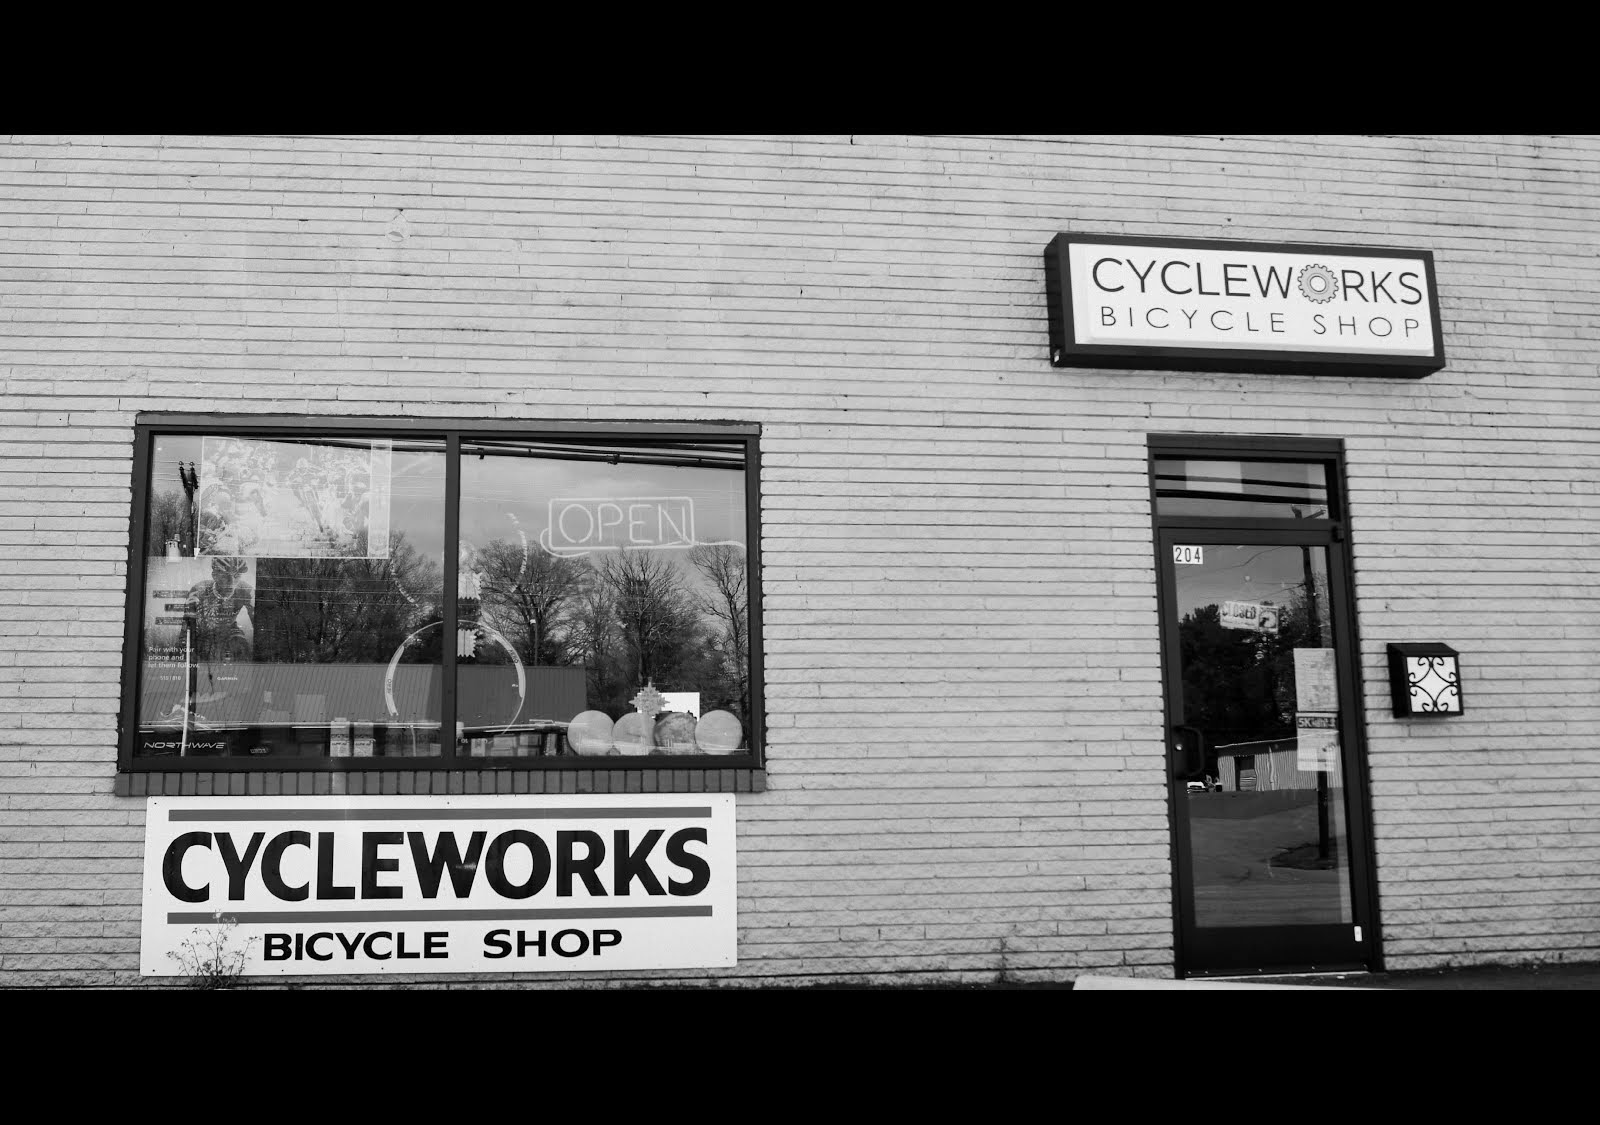 Bikes by Cycleworks